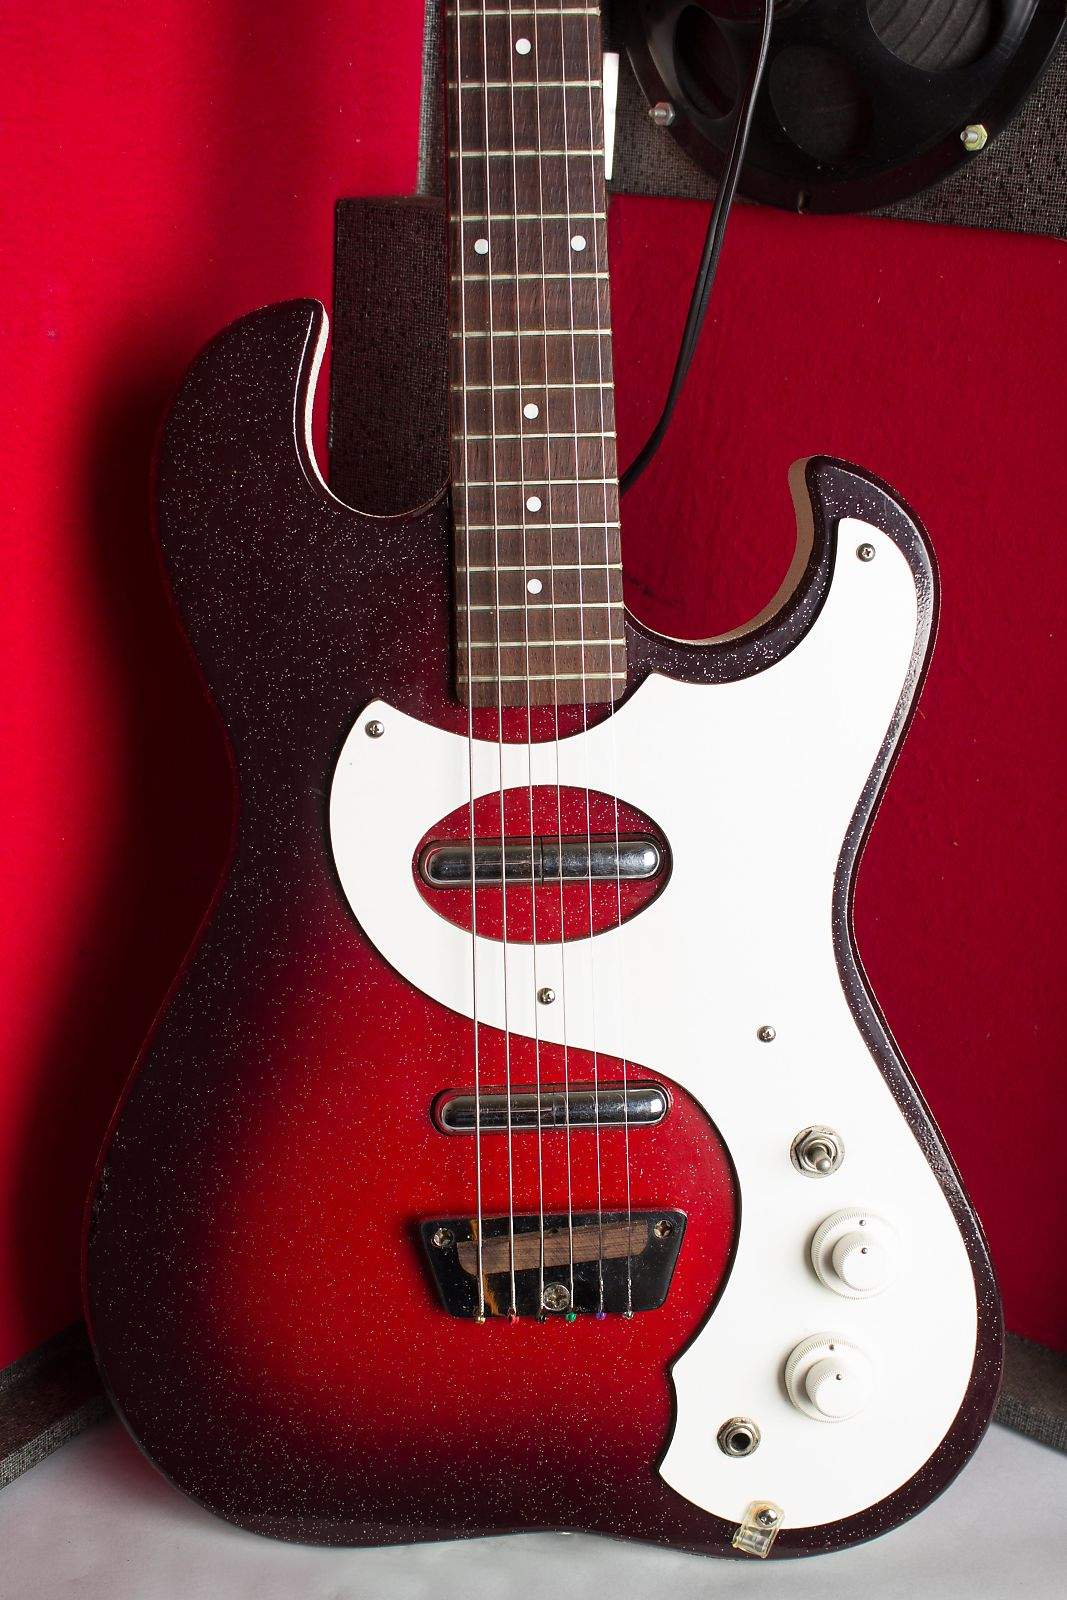 Silvertone Model 1457 Amp-In-Case Semi-Hollow Body Electric Guitar,  made by Danelectro,  c. 1964.